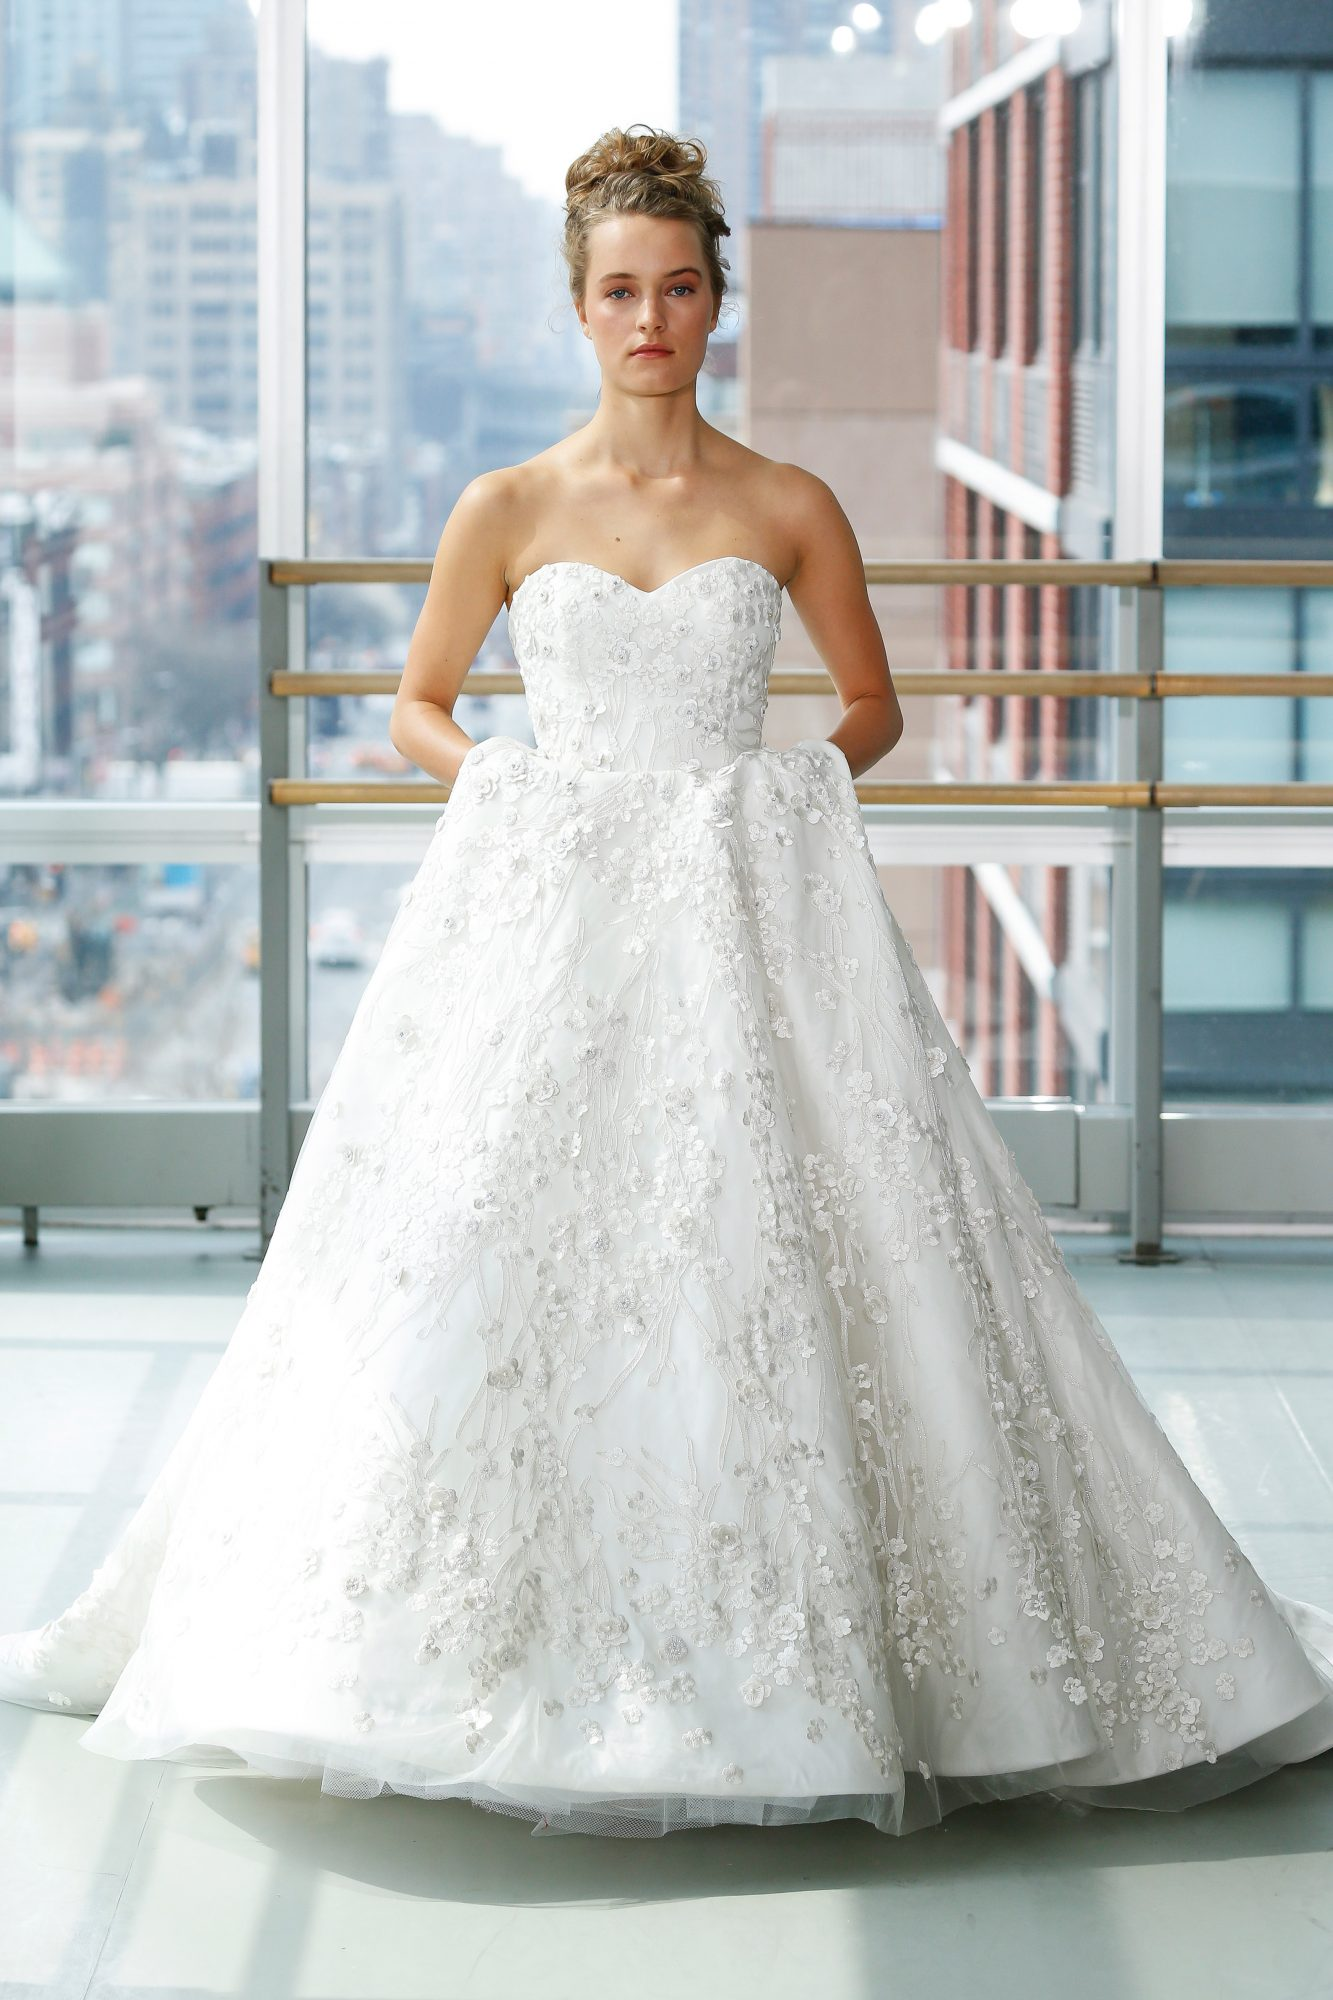 gracy accad wedding dress spring 2019 ball gown beaded sweet heart